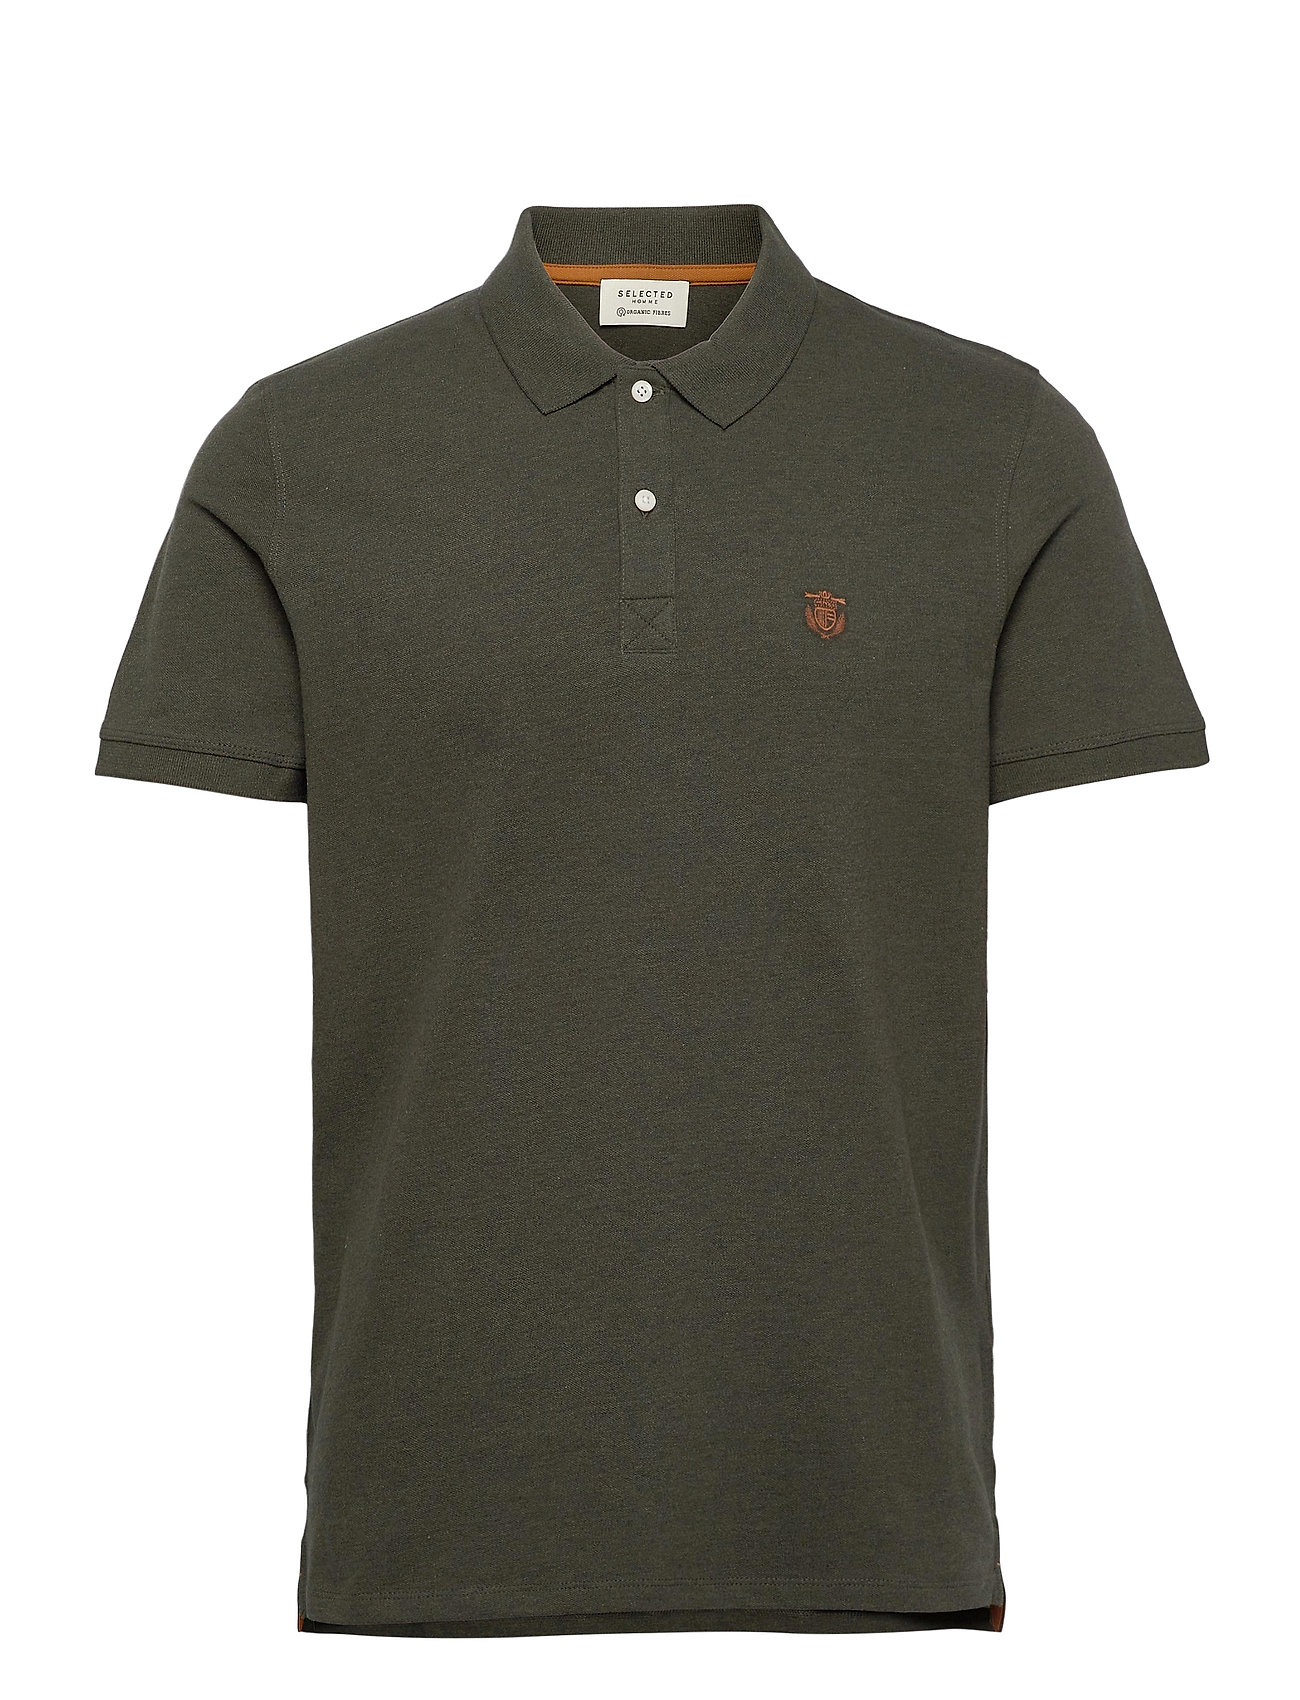 Selected Homme SHDARO SS EMBROIDERY POLO NOOS - ROSIN